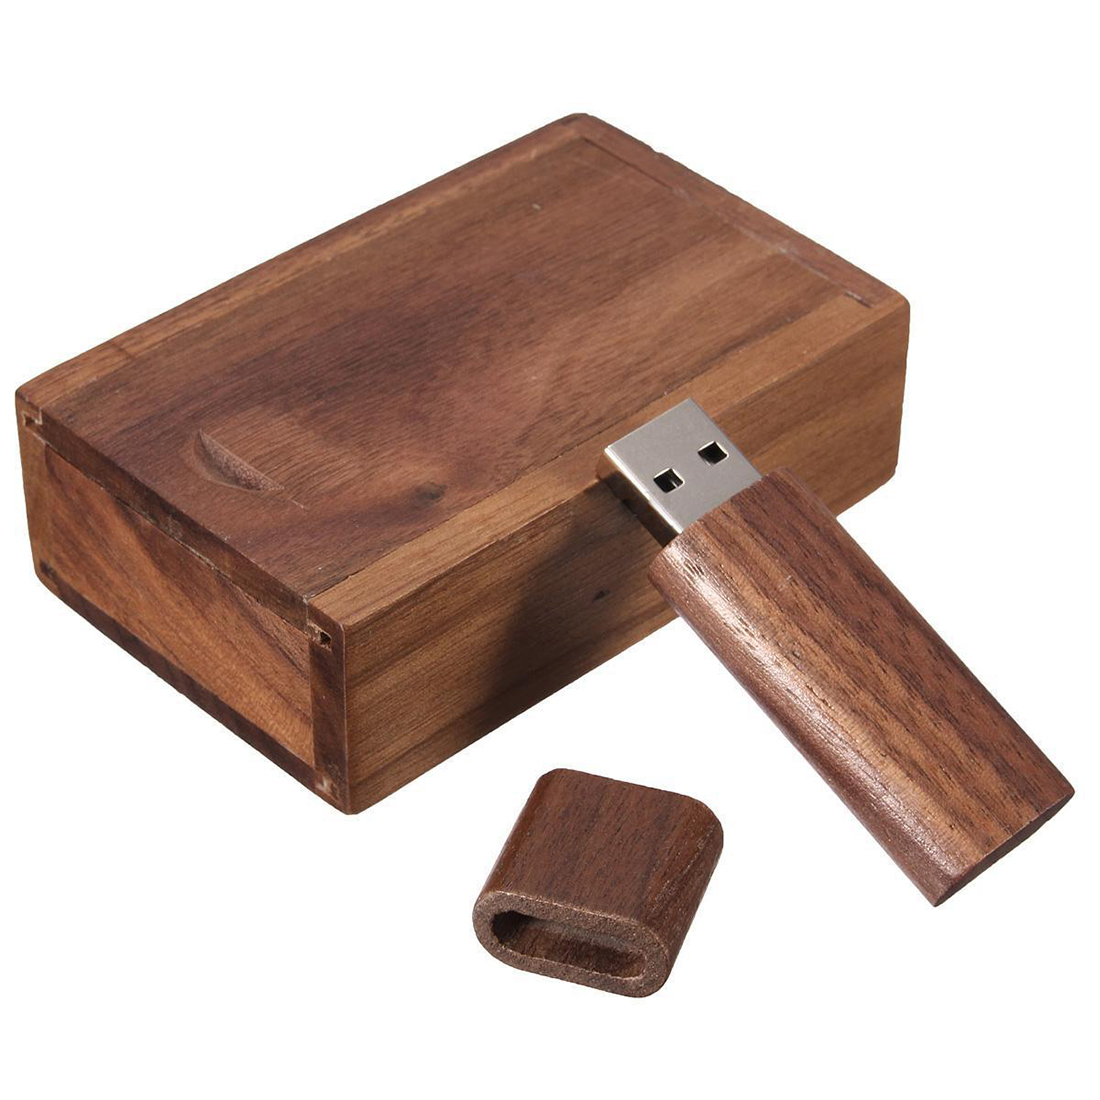 4-32G GB USB 2.0 Flash Pen Drive Storage Wooden Memory Stick U Disk with Wood Case Storage Capacity